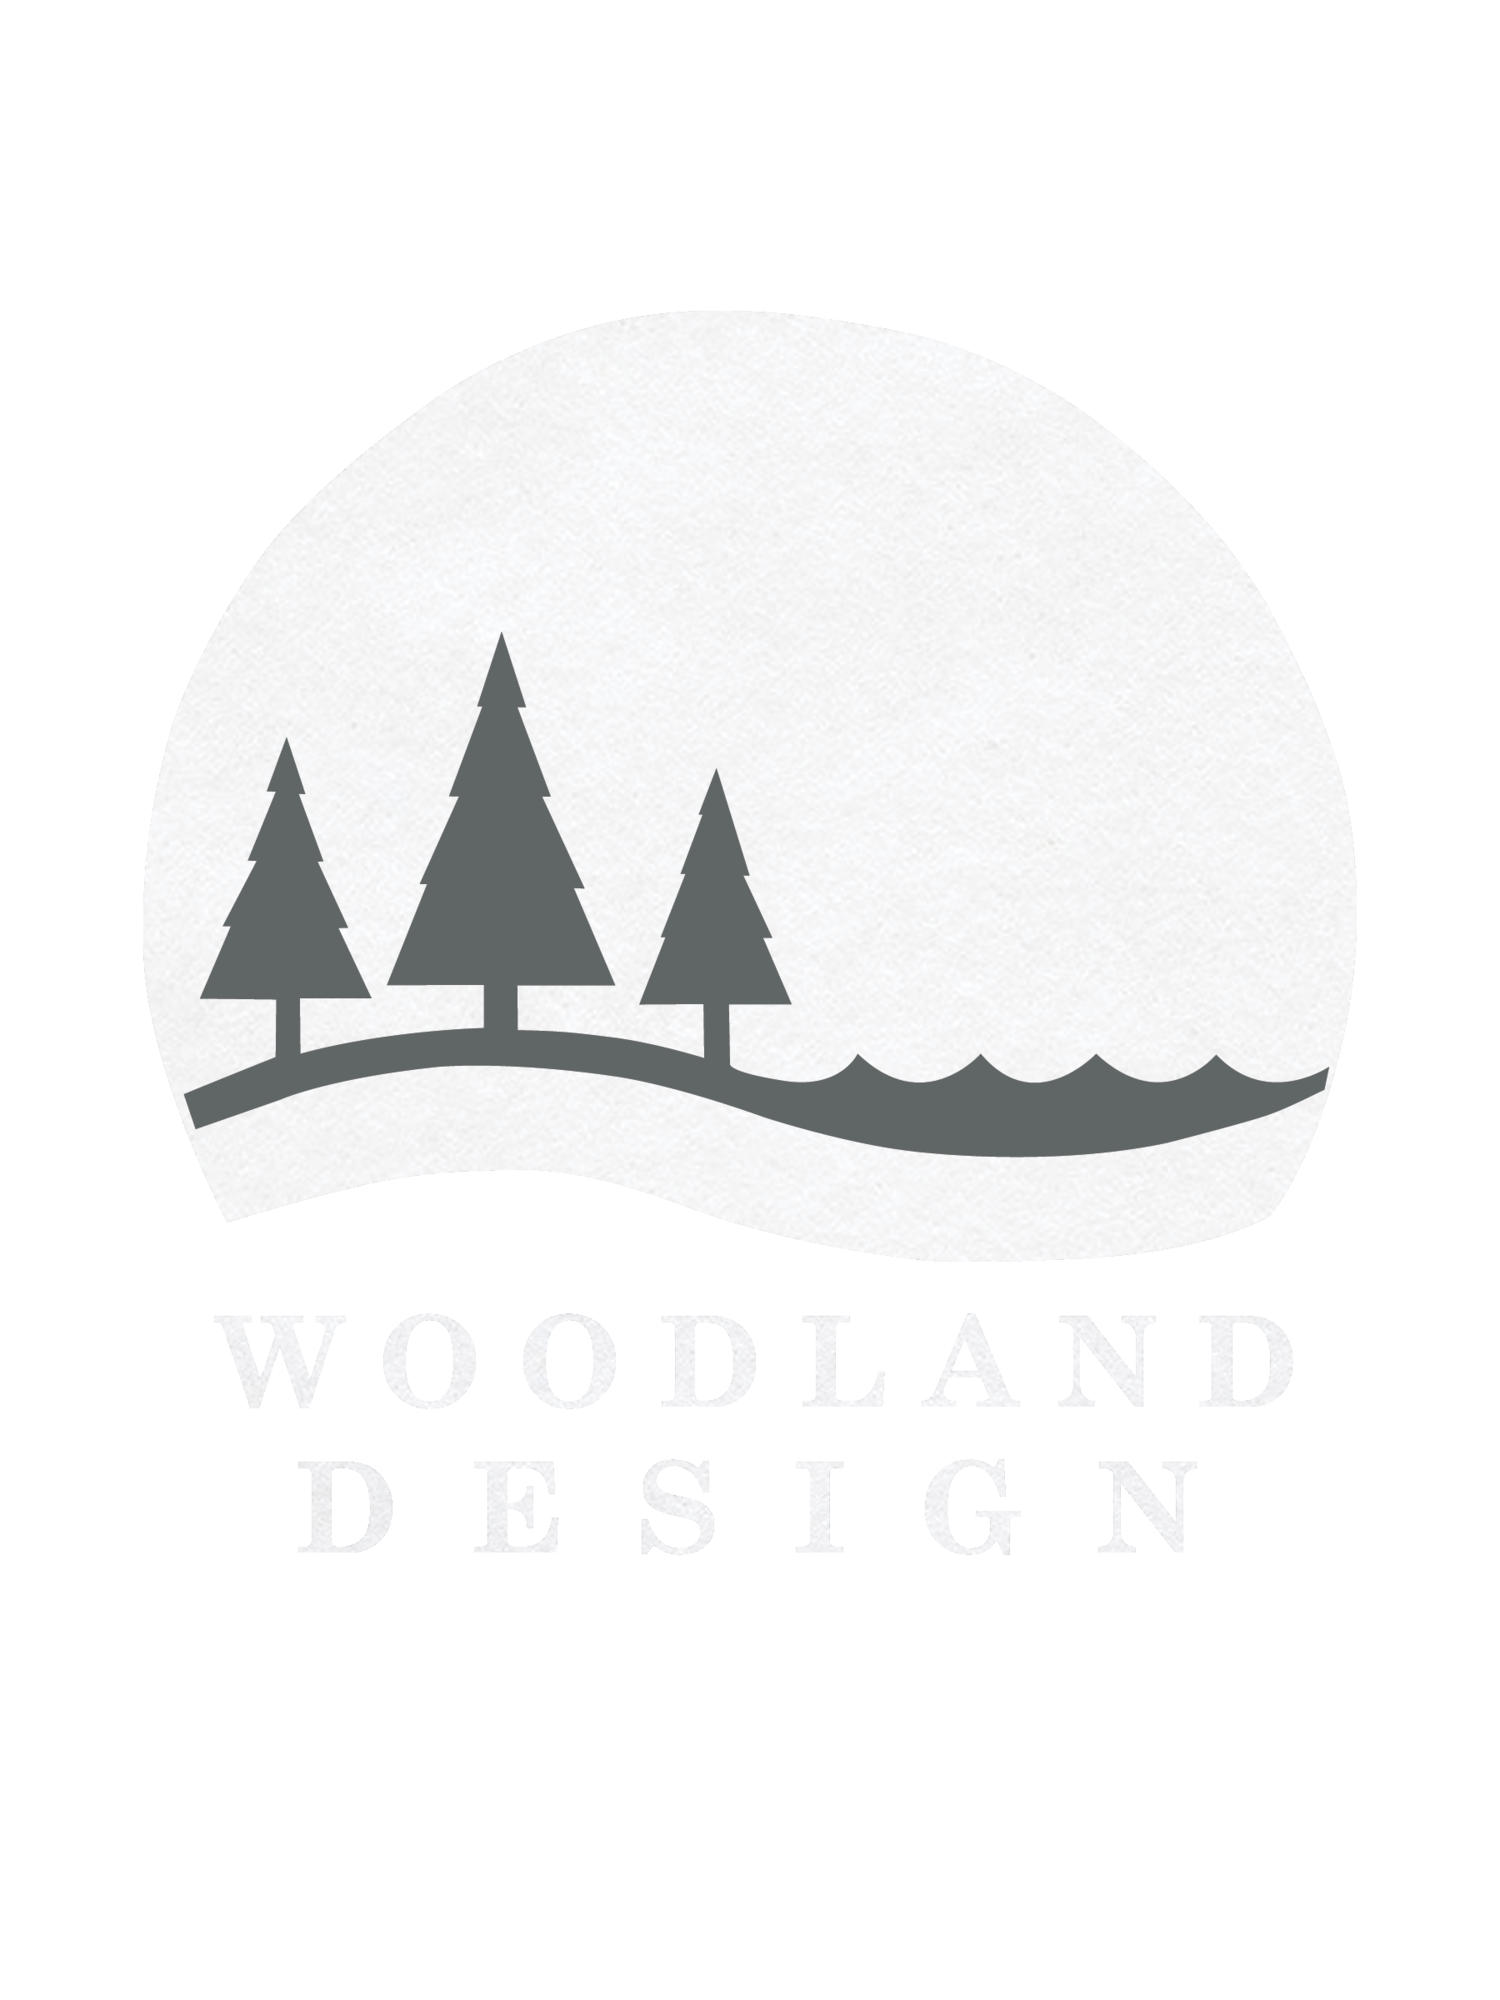 Woodland Design Associates Inc.